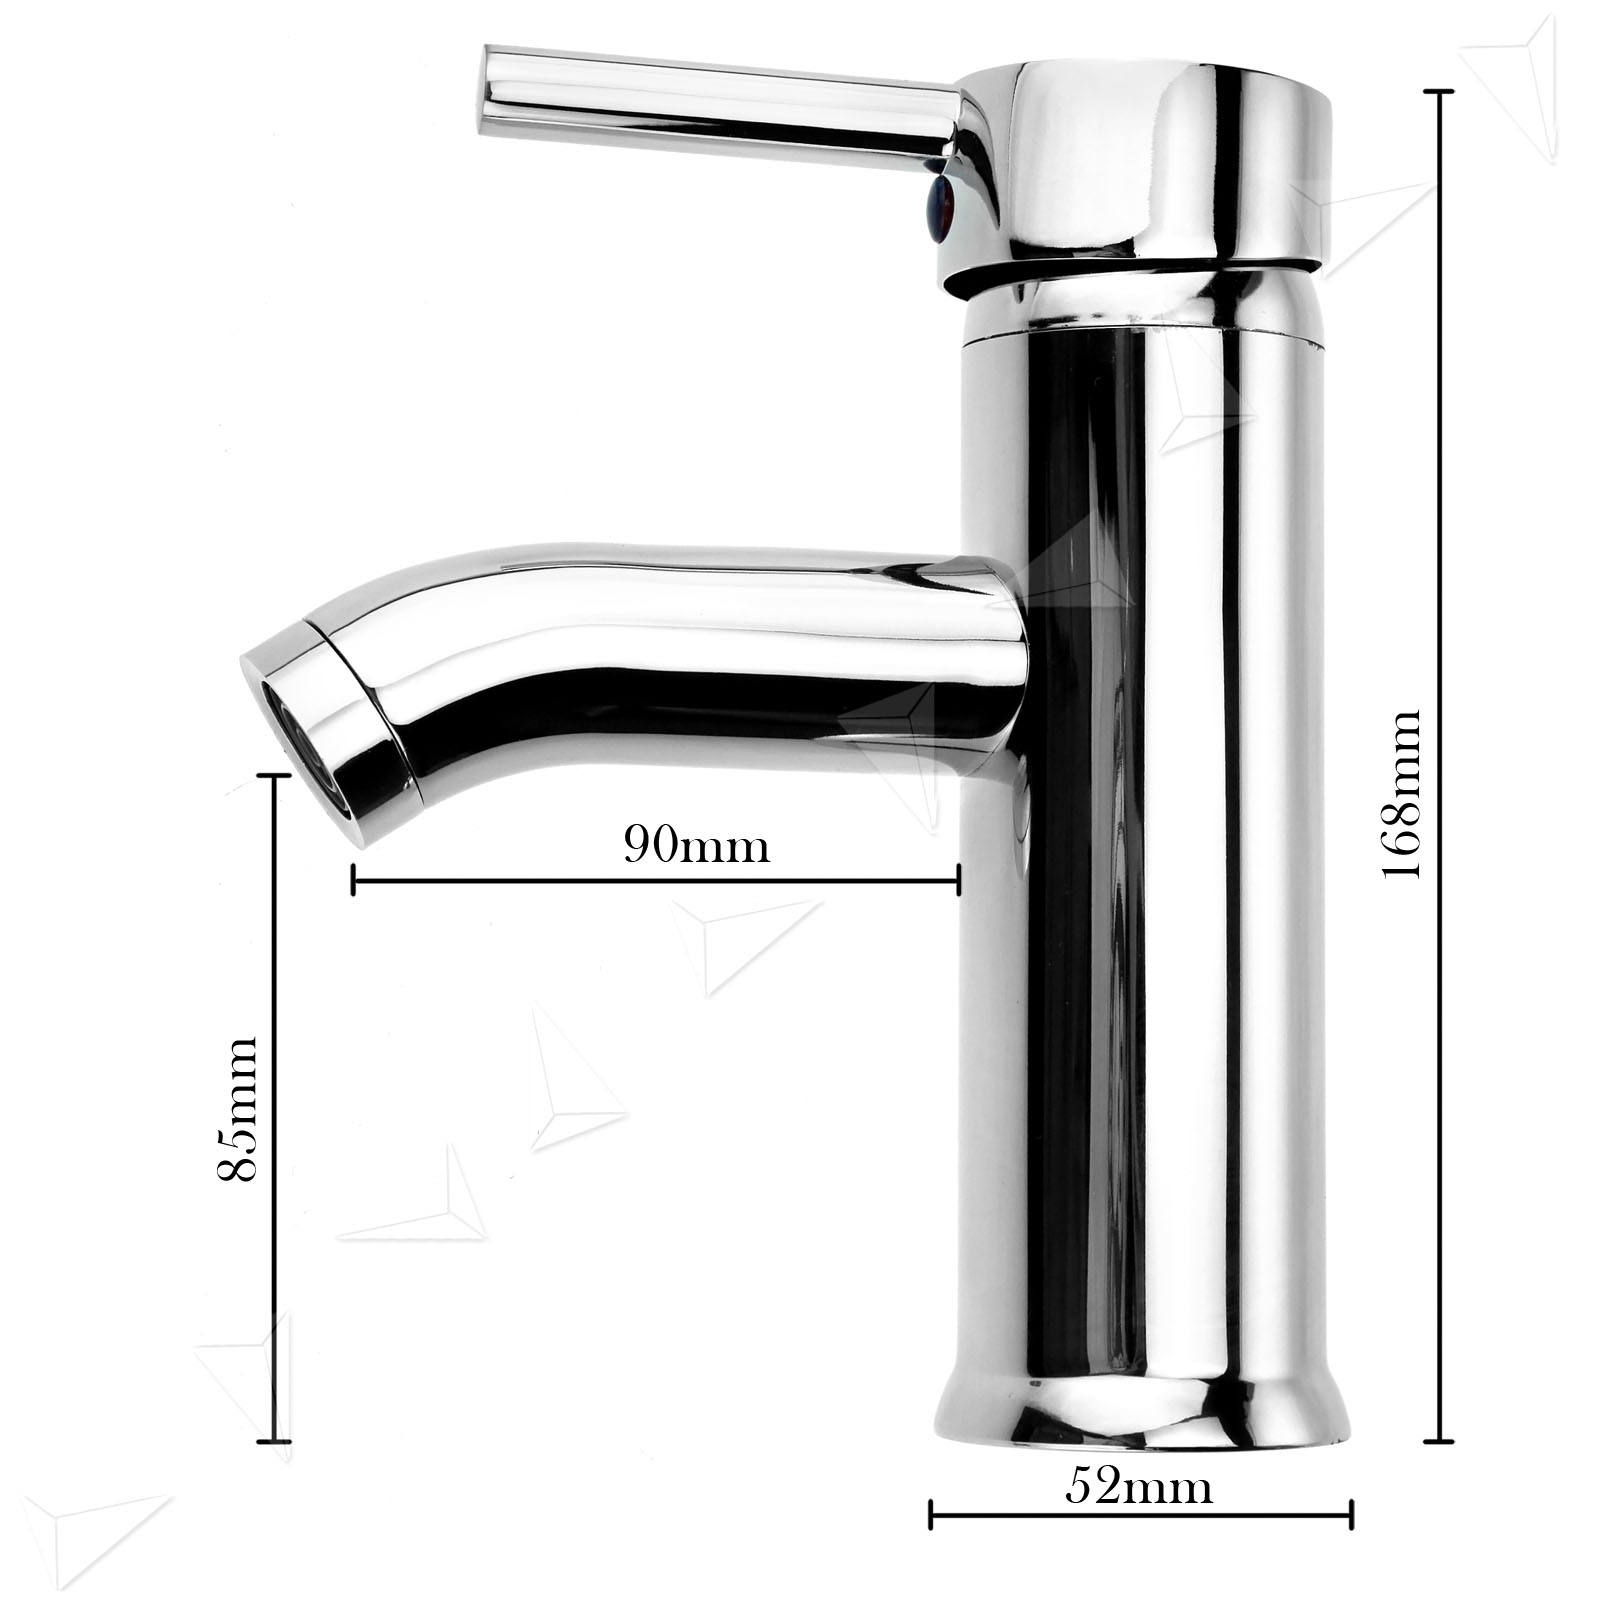 chrome plated brass body kitchen bathroom basin sink mixer. Black Bedroom Furniture Sets. Home Design Ideas